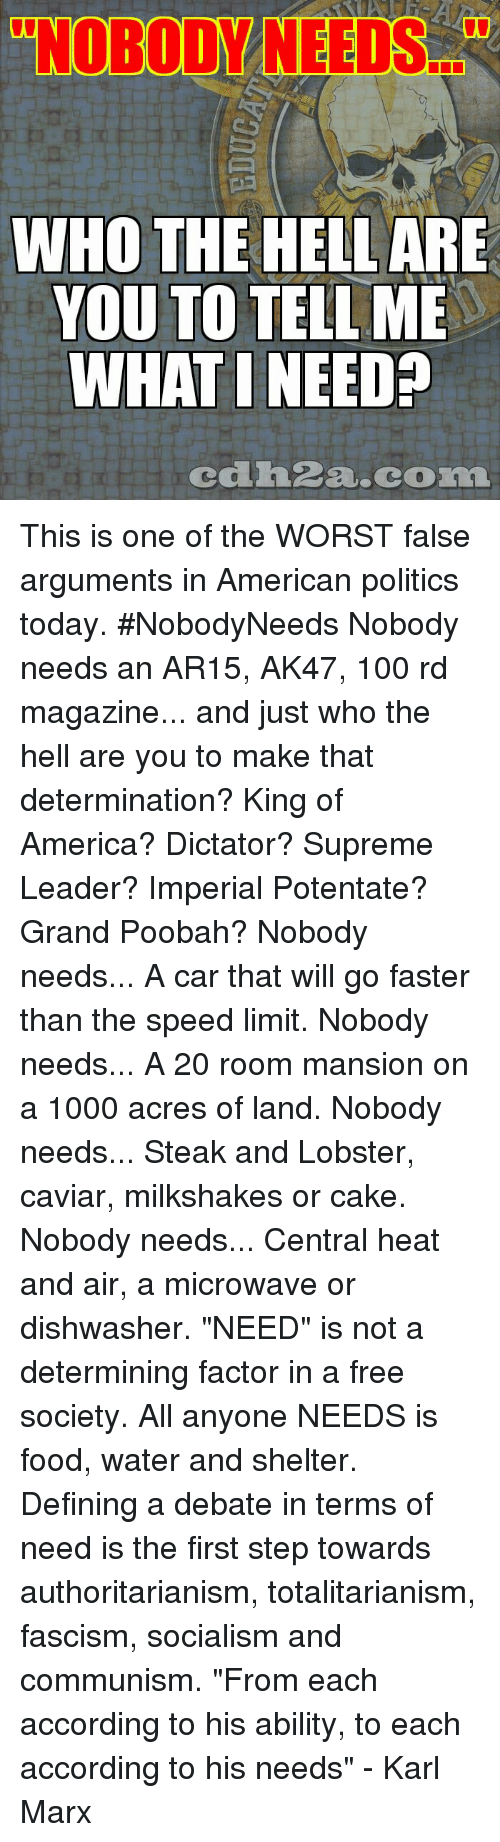 """caviar: """"NOBODY NEEDS.  WHO THE HELL ARE  YOU TO TELL ME  WHAT I NEED  cdh2a.com This is one of the WORST false arguments in American politics today. #NobodyNeeds Nobody needs an AR15, AK47, 100 rd magazine... and just who the hell are you to make that determination? King of America? Dictator? Supreme Leader? Imperial Potentate? Grand Poobah?  Nobody needs... A car that will go faster than the speed limit. Nobody needs... A 20 room mansion on a 1000 acres of land. Nobody needs... Steak and Lobster, caviar, milkshakes or cake. Nobody needs... Central heat and air, a microwave or dishwasher.  """"NEED"""" is not a determining factor in a free society. All anyone NEEDS is food, water and shelter. Defining a debate in terms of need is the first step towards authoritarianism, totalitarianism, fascism, socialism and communism.  """"From each according to his ability, to each according to his needs"""" - Karl Marx"""